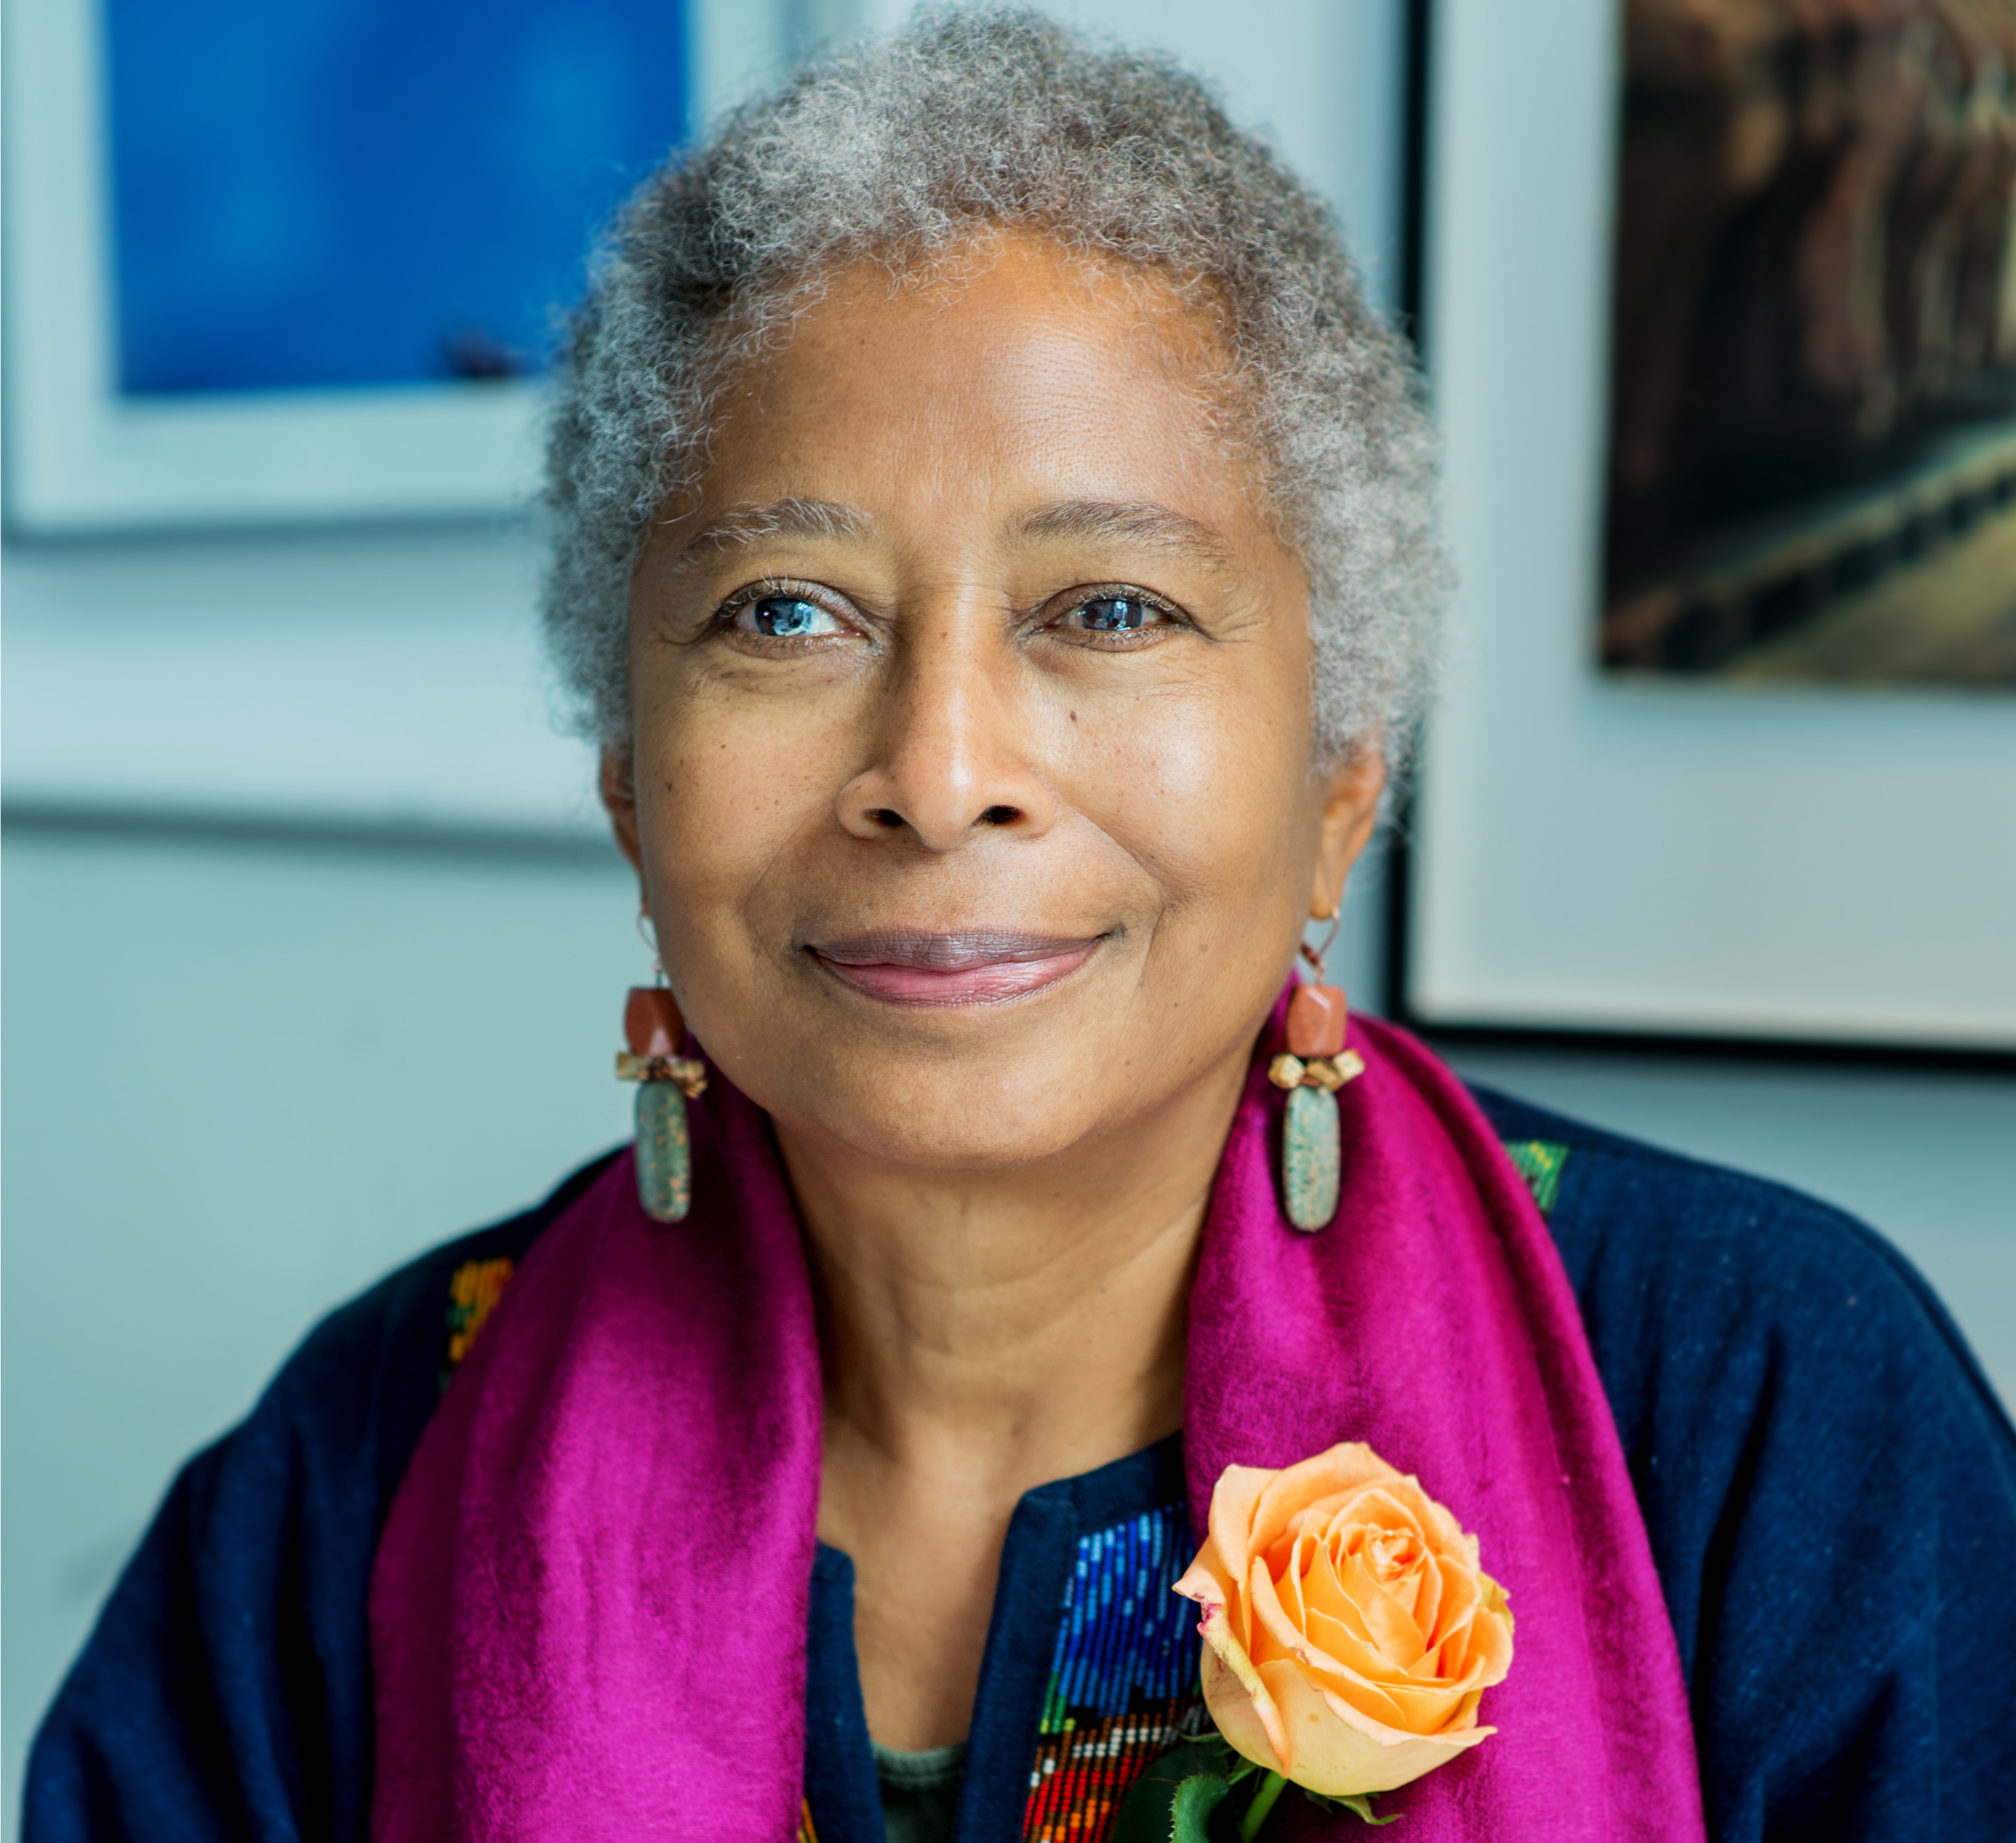 a biography of alice walker the american fictional author Alice walker's biography and life storywalker was born in eatonton, georgia, the youngest of eight children, to willie lee walker and minnie lou tallulah grant  walker credits king for her decision to return to the american south as an activist for the civil rights movement  non-fiction books in search of our mothers' gardens.